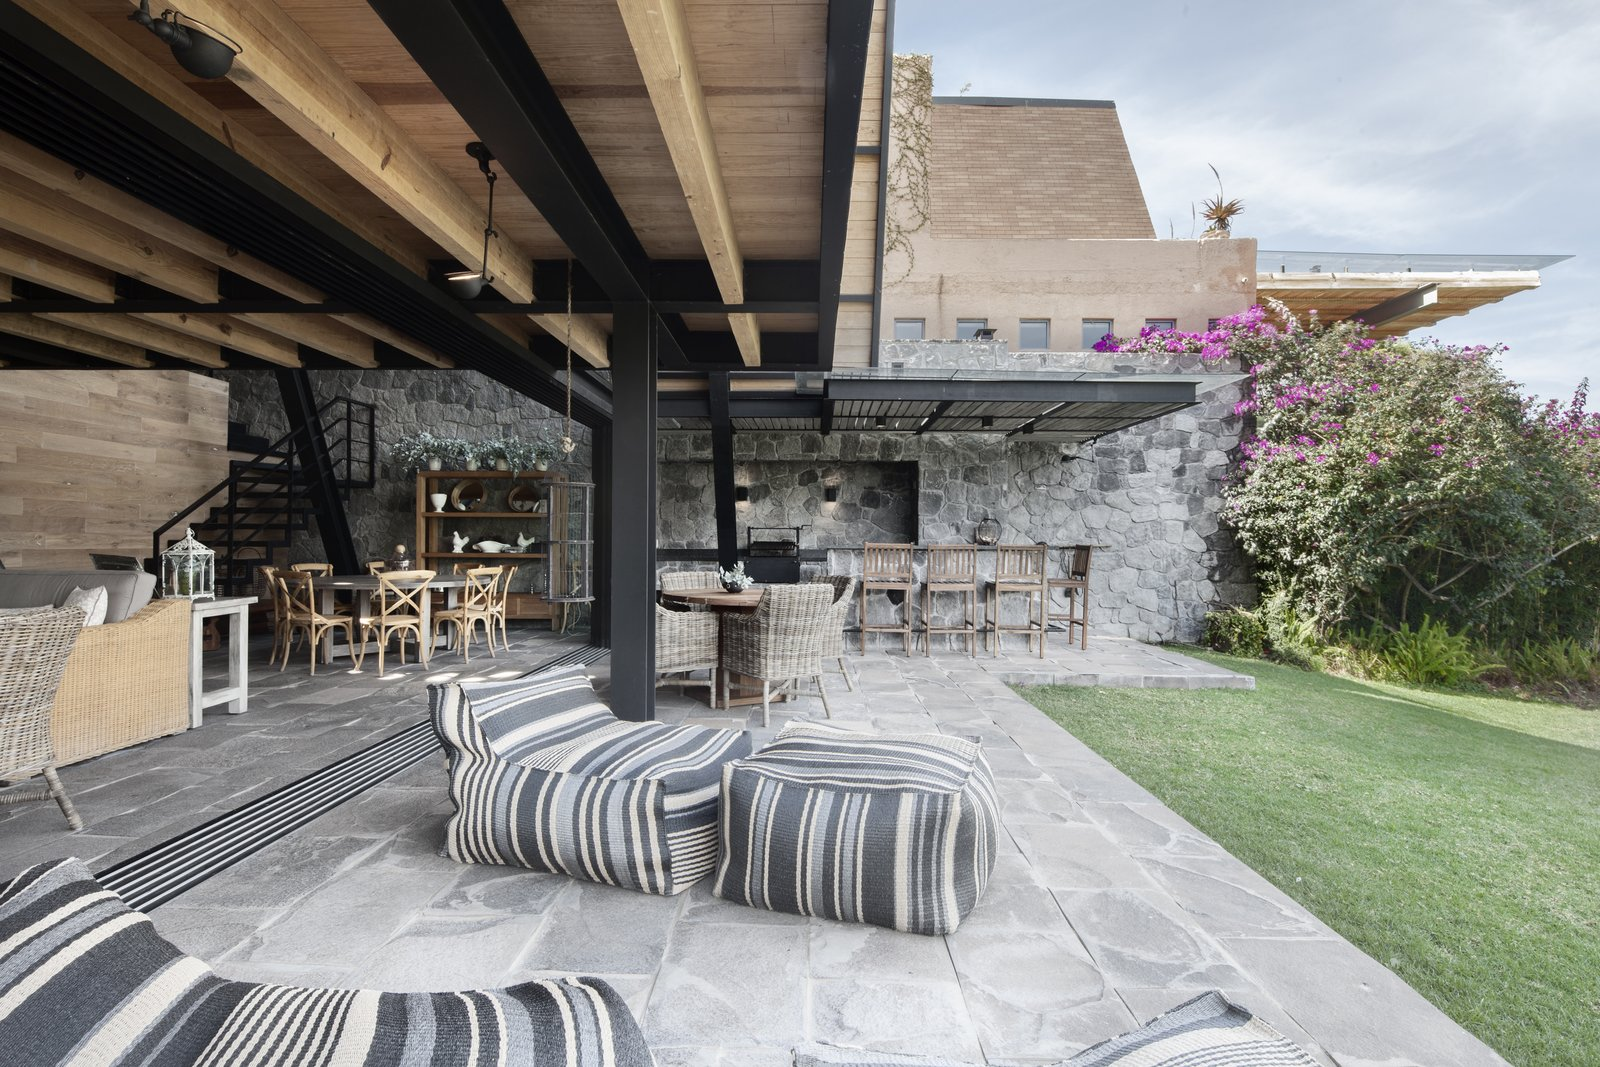 Group vacations are great for splitting travel costs, but not so good for getting restful alone time. That's why architecture studio Método used vertical space to divvy up a shared vacation house outside Mexico City.  House ideas from Grade-A Getaway Outside Mexico City